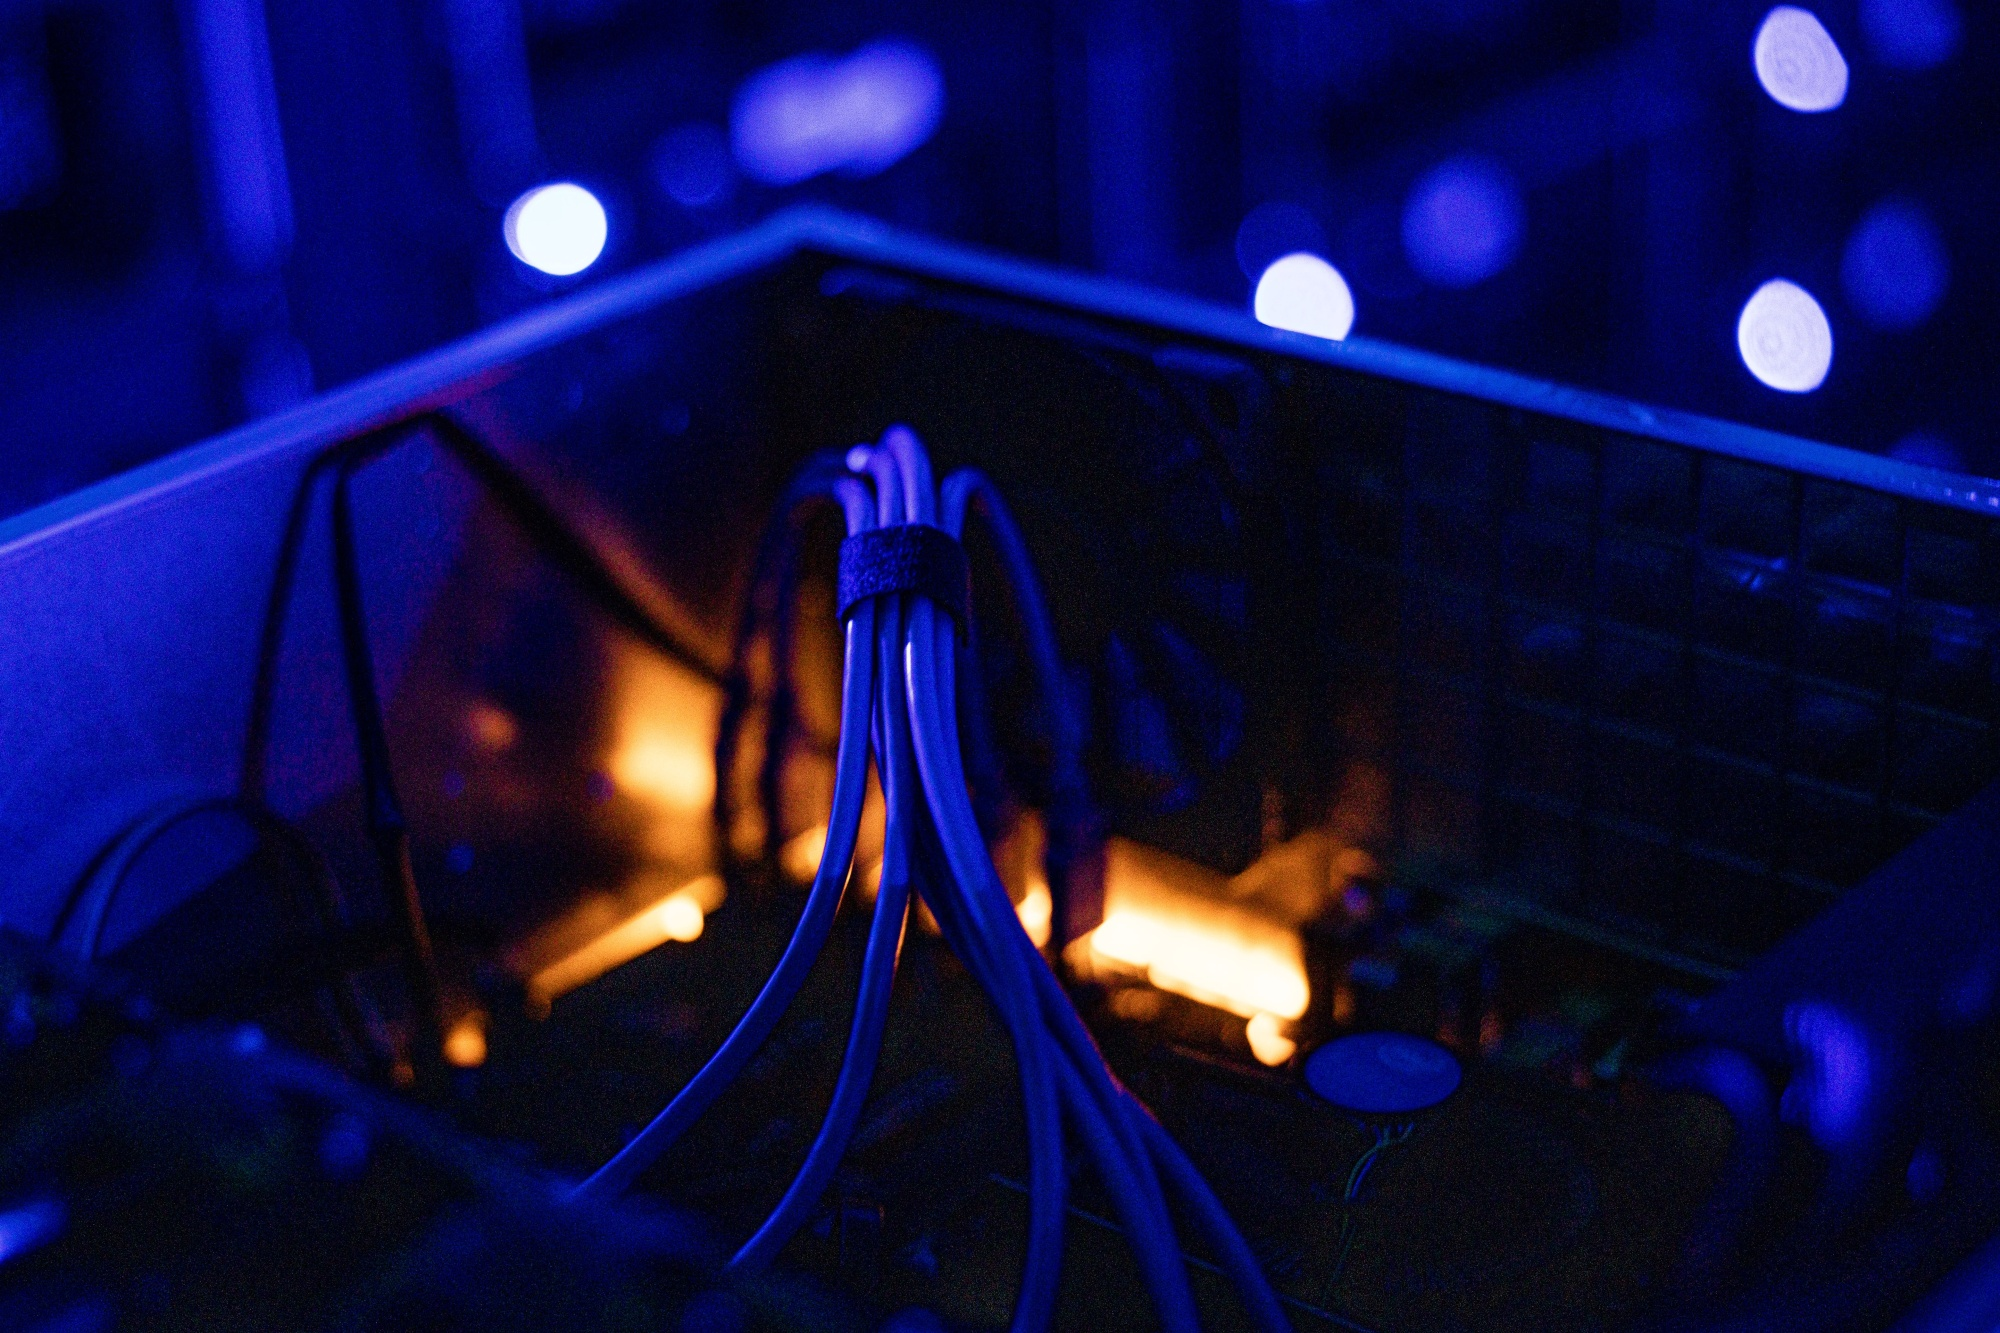 Cables inside a draw housing graphics processing units (GPU) used to mine the Ethereum and Zilliqa cryptocurrencies at the Evobits crypto farm in Cluj-Napoca, Romania, on Wednesday, Jan. 22, 2021. The world's second-most-valuable cryptocurrency, Ethereum, rallied 75% this year, outpacing its larger rival Bitcoin.